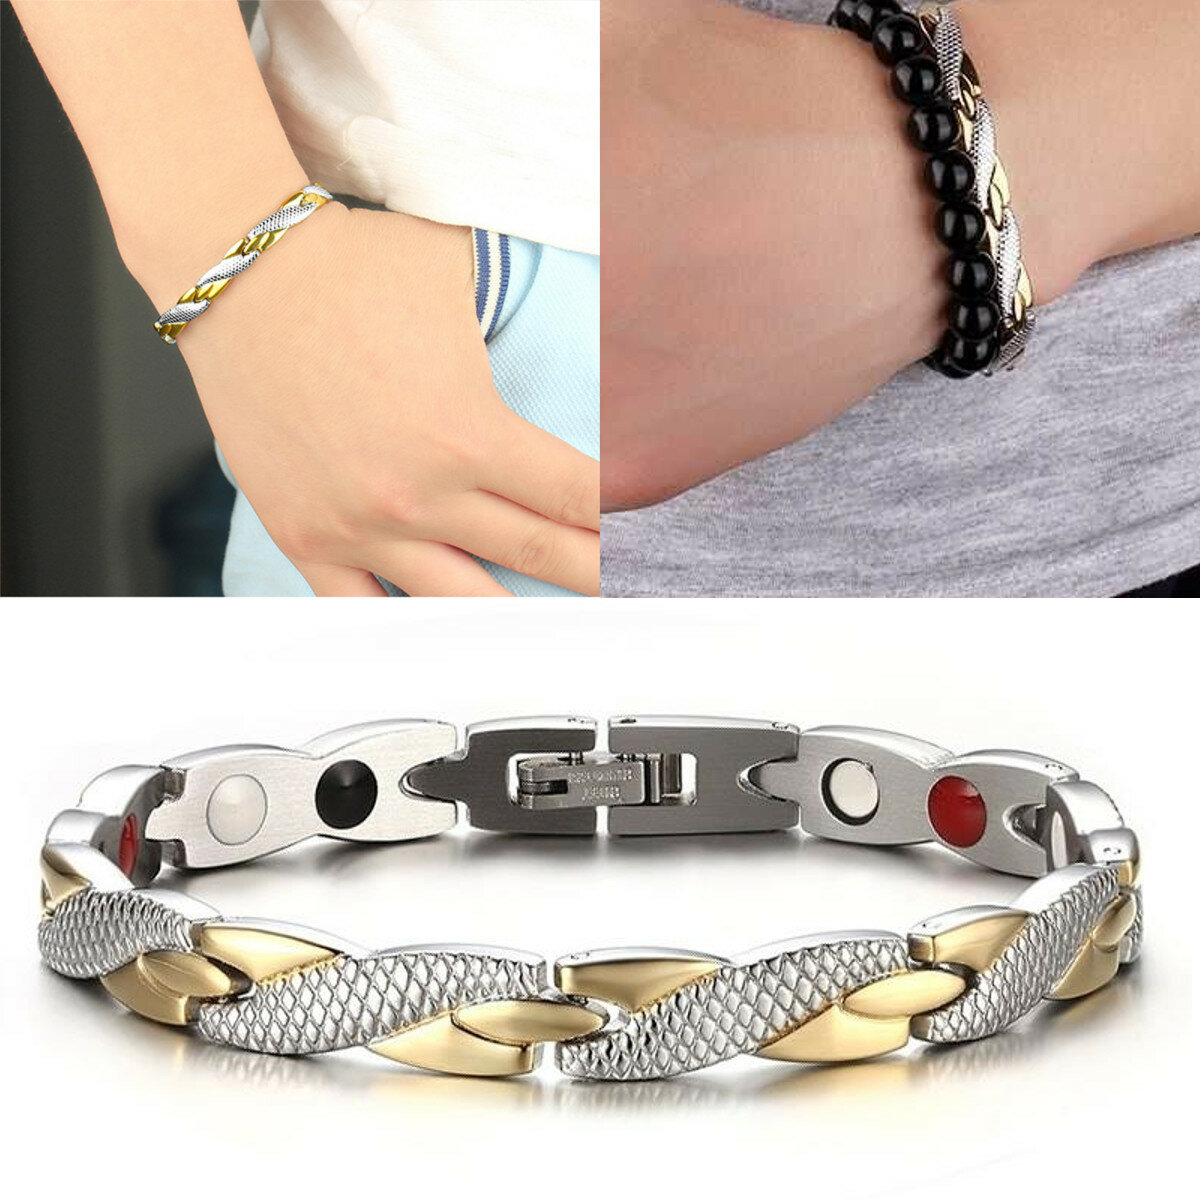 Fashion Magnetic Therapy Single Row Bracelet For Men Stainless Steel Silver Gold Chain Bracelet - 1